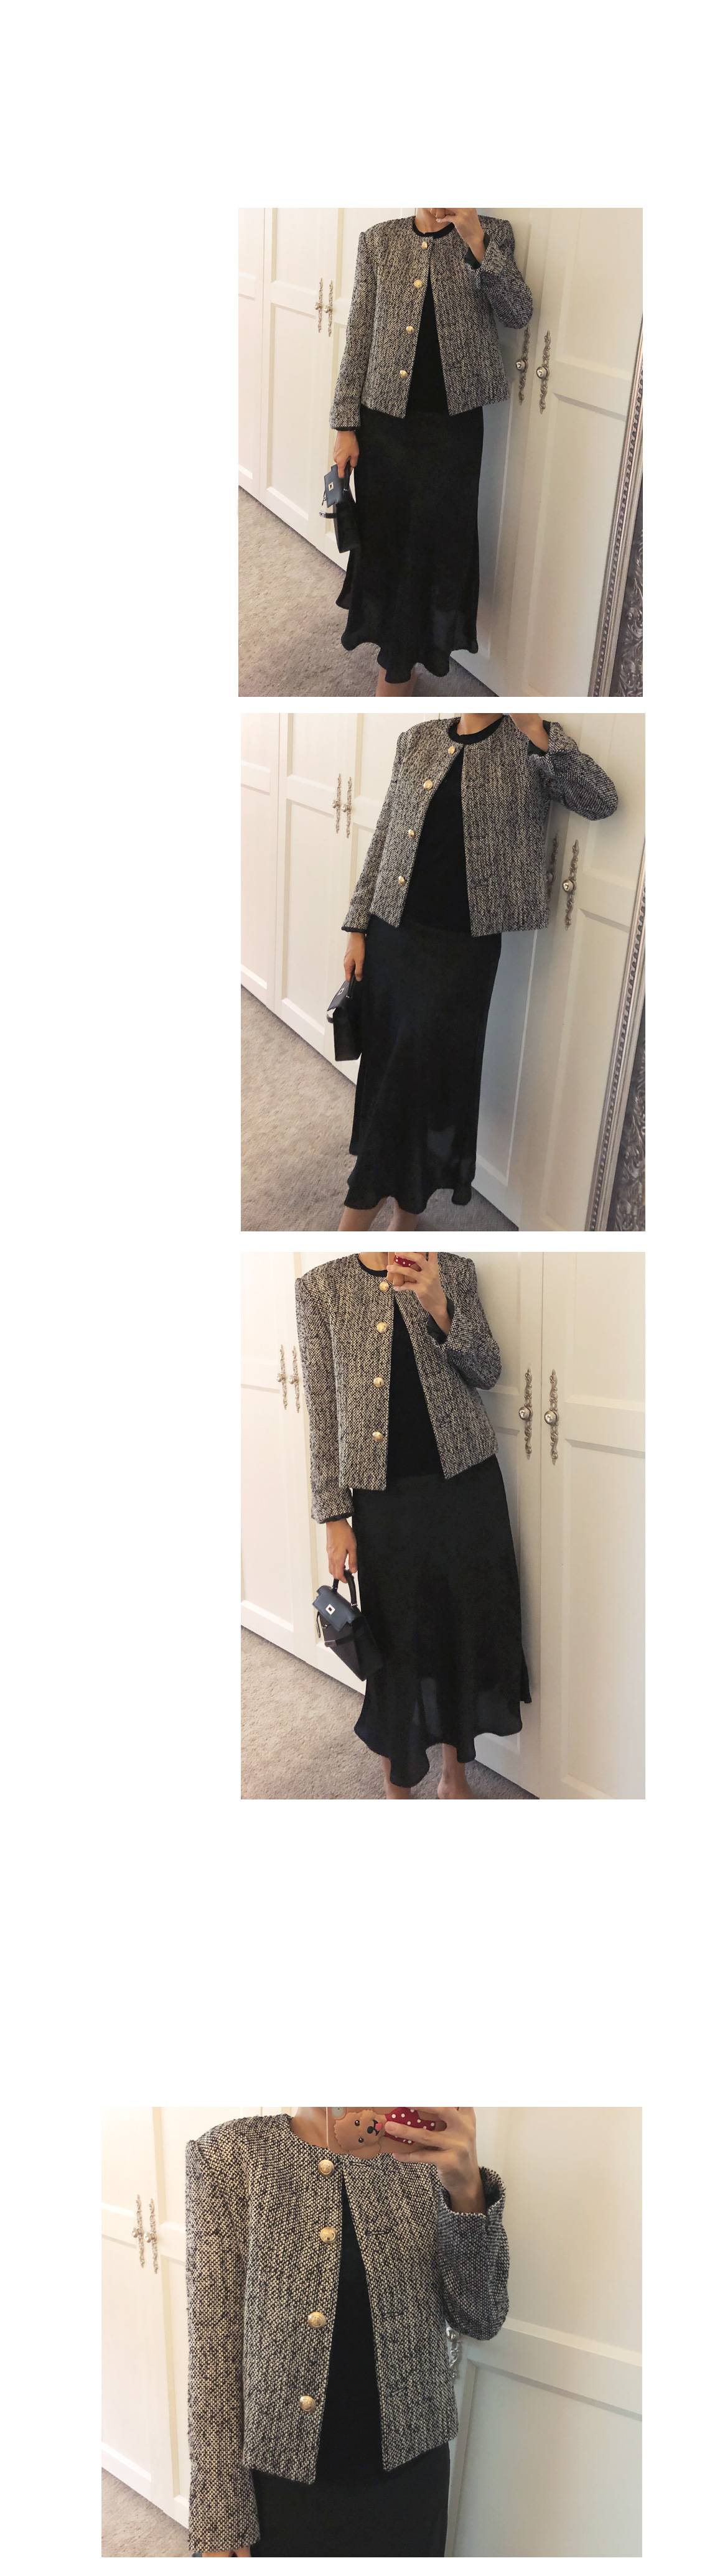 Black jacket with gold button